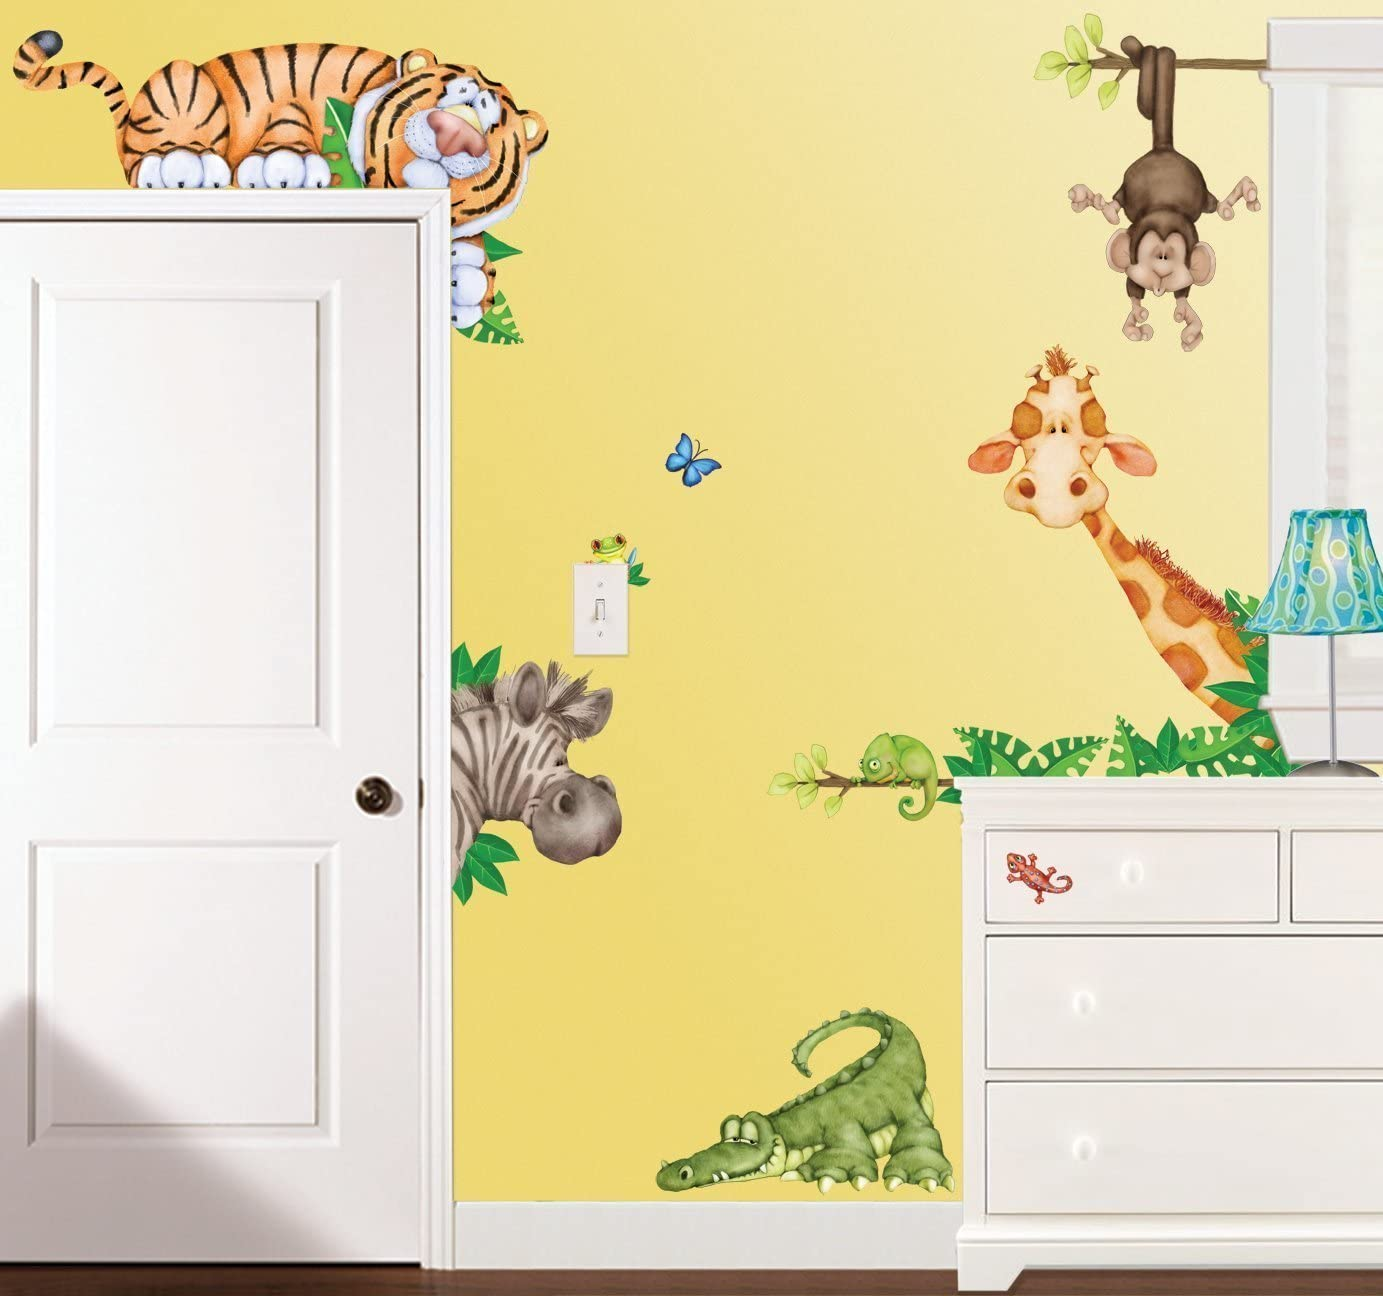 Baby Room Decor Wall Sticker Toddlers Bedroom Decals Learning Removable Sticker Nursery Wall D/écor Ocean Sea Animal Decals for Children Study Room Decoration Safari Animals Wall Stickers for Kids